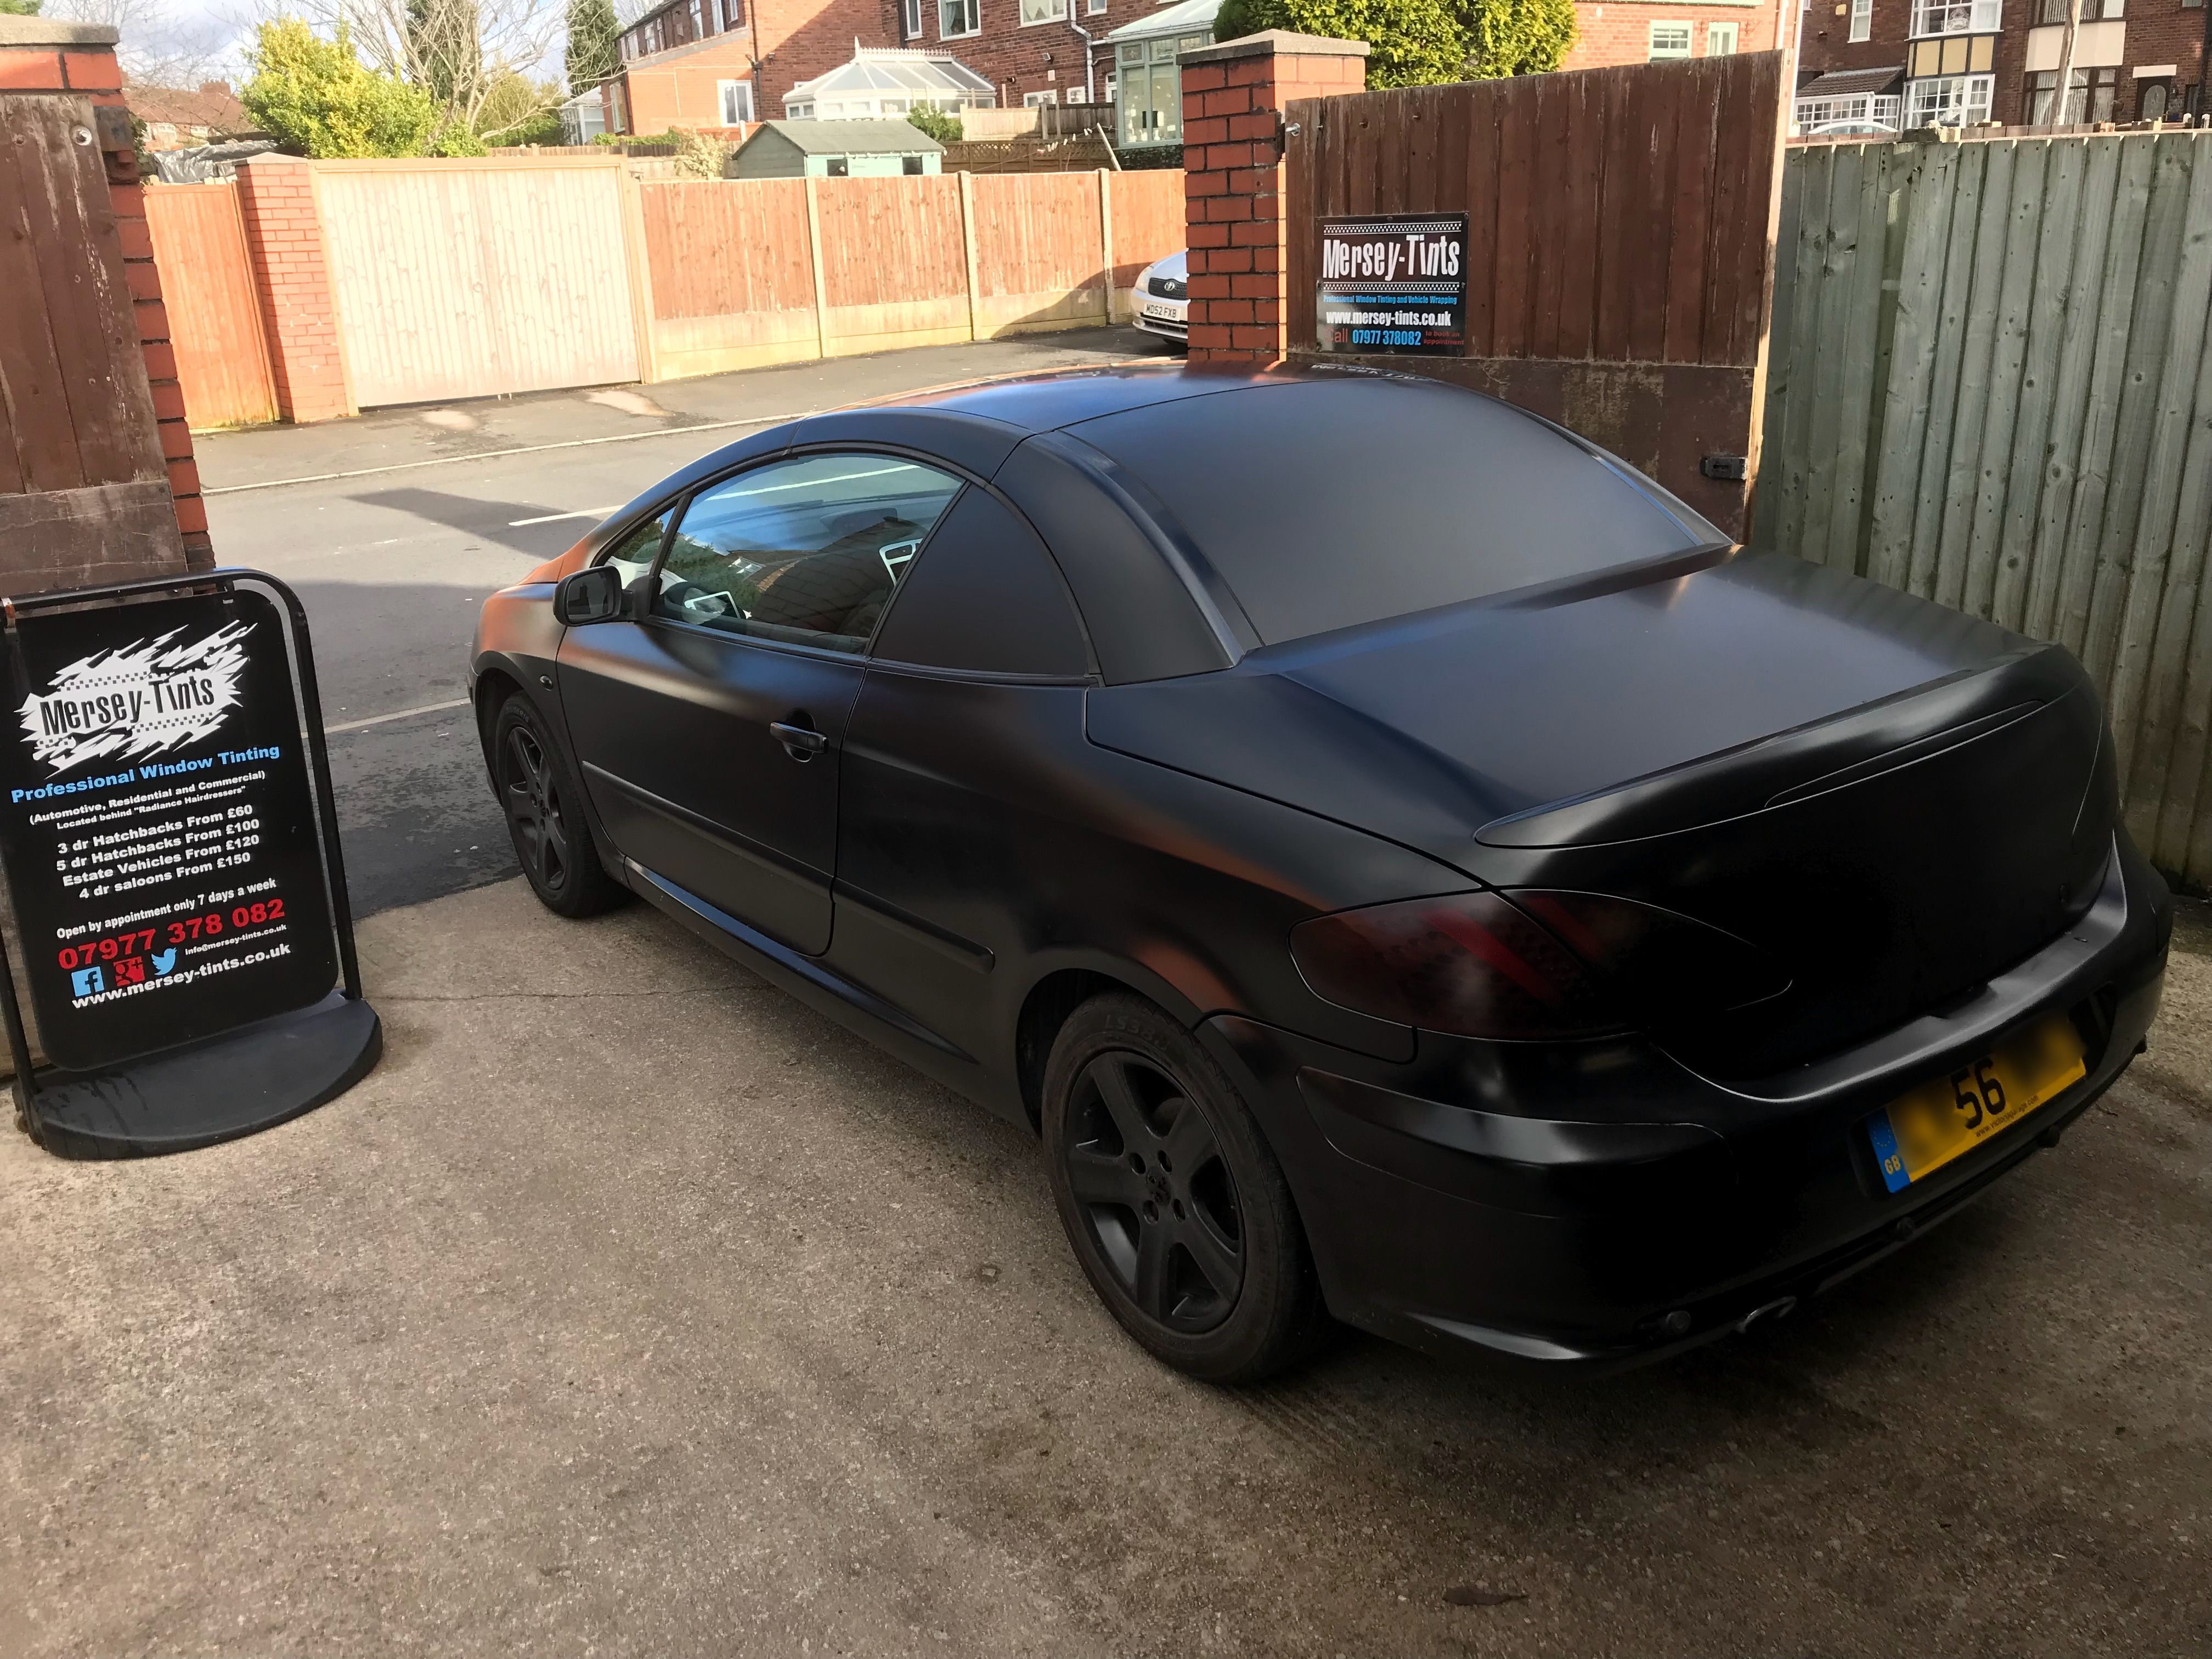 Lol We Had Chris With His 2006 Peugeot 307cc In This Afternoon For Matt Black Window Wrap Lol Christ I Ve Seen It All Now Lmao Merseytints Kpmf Peugeo